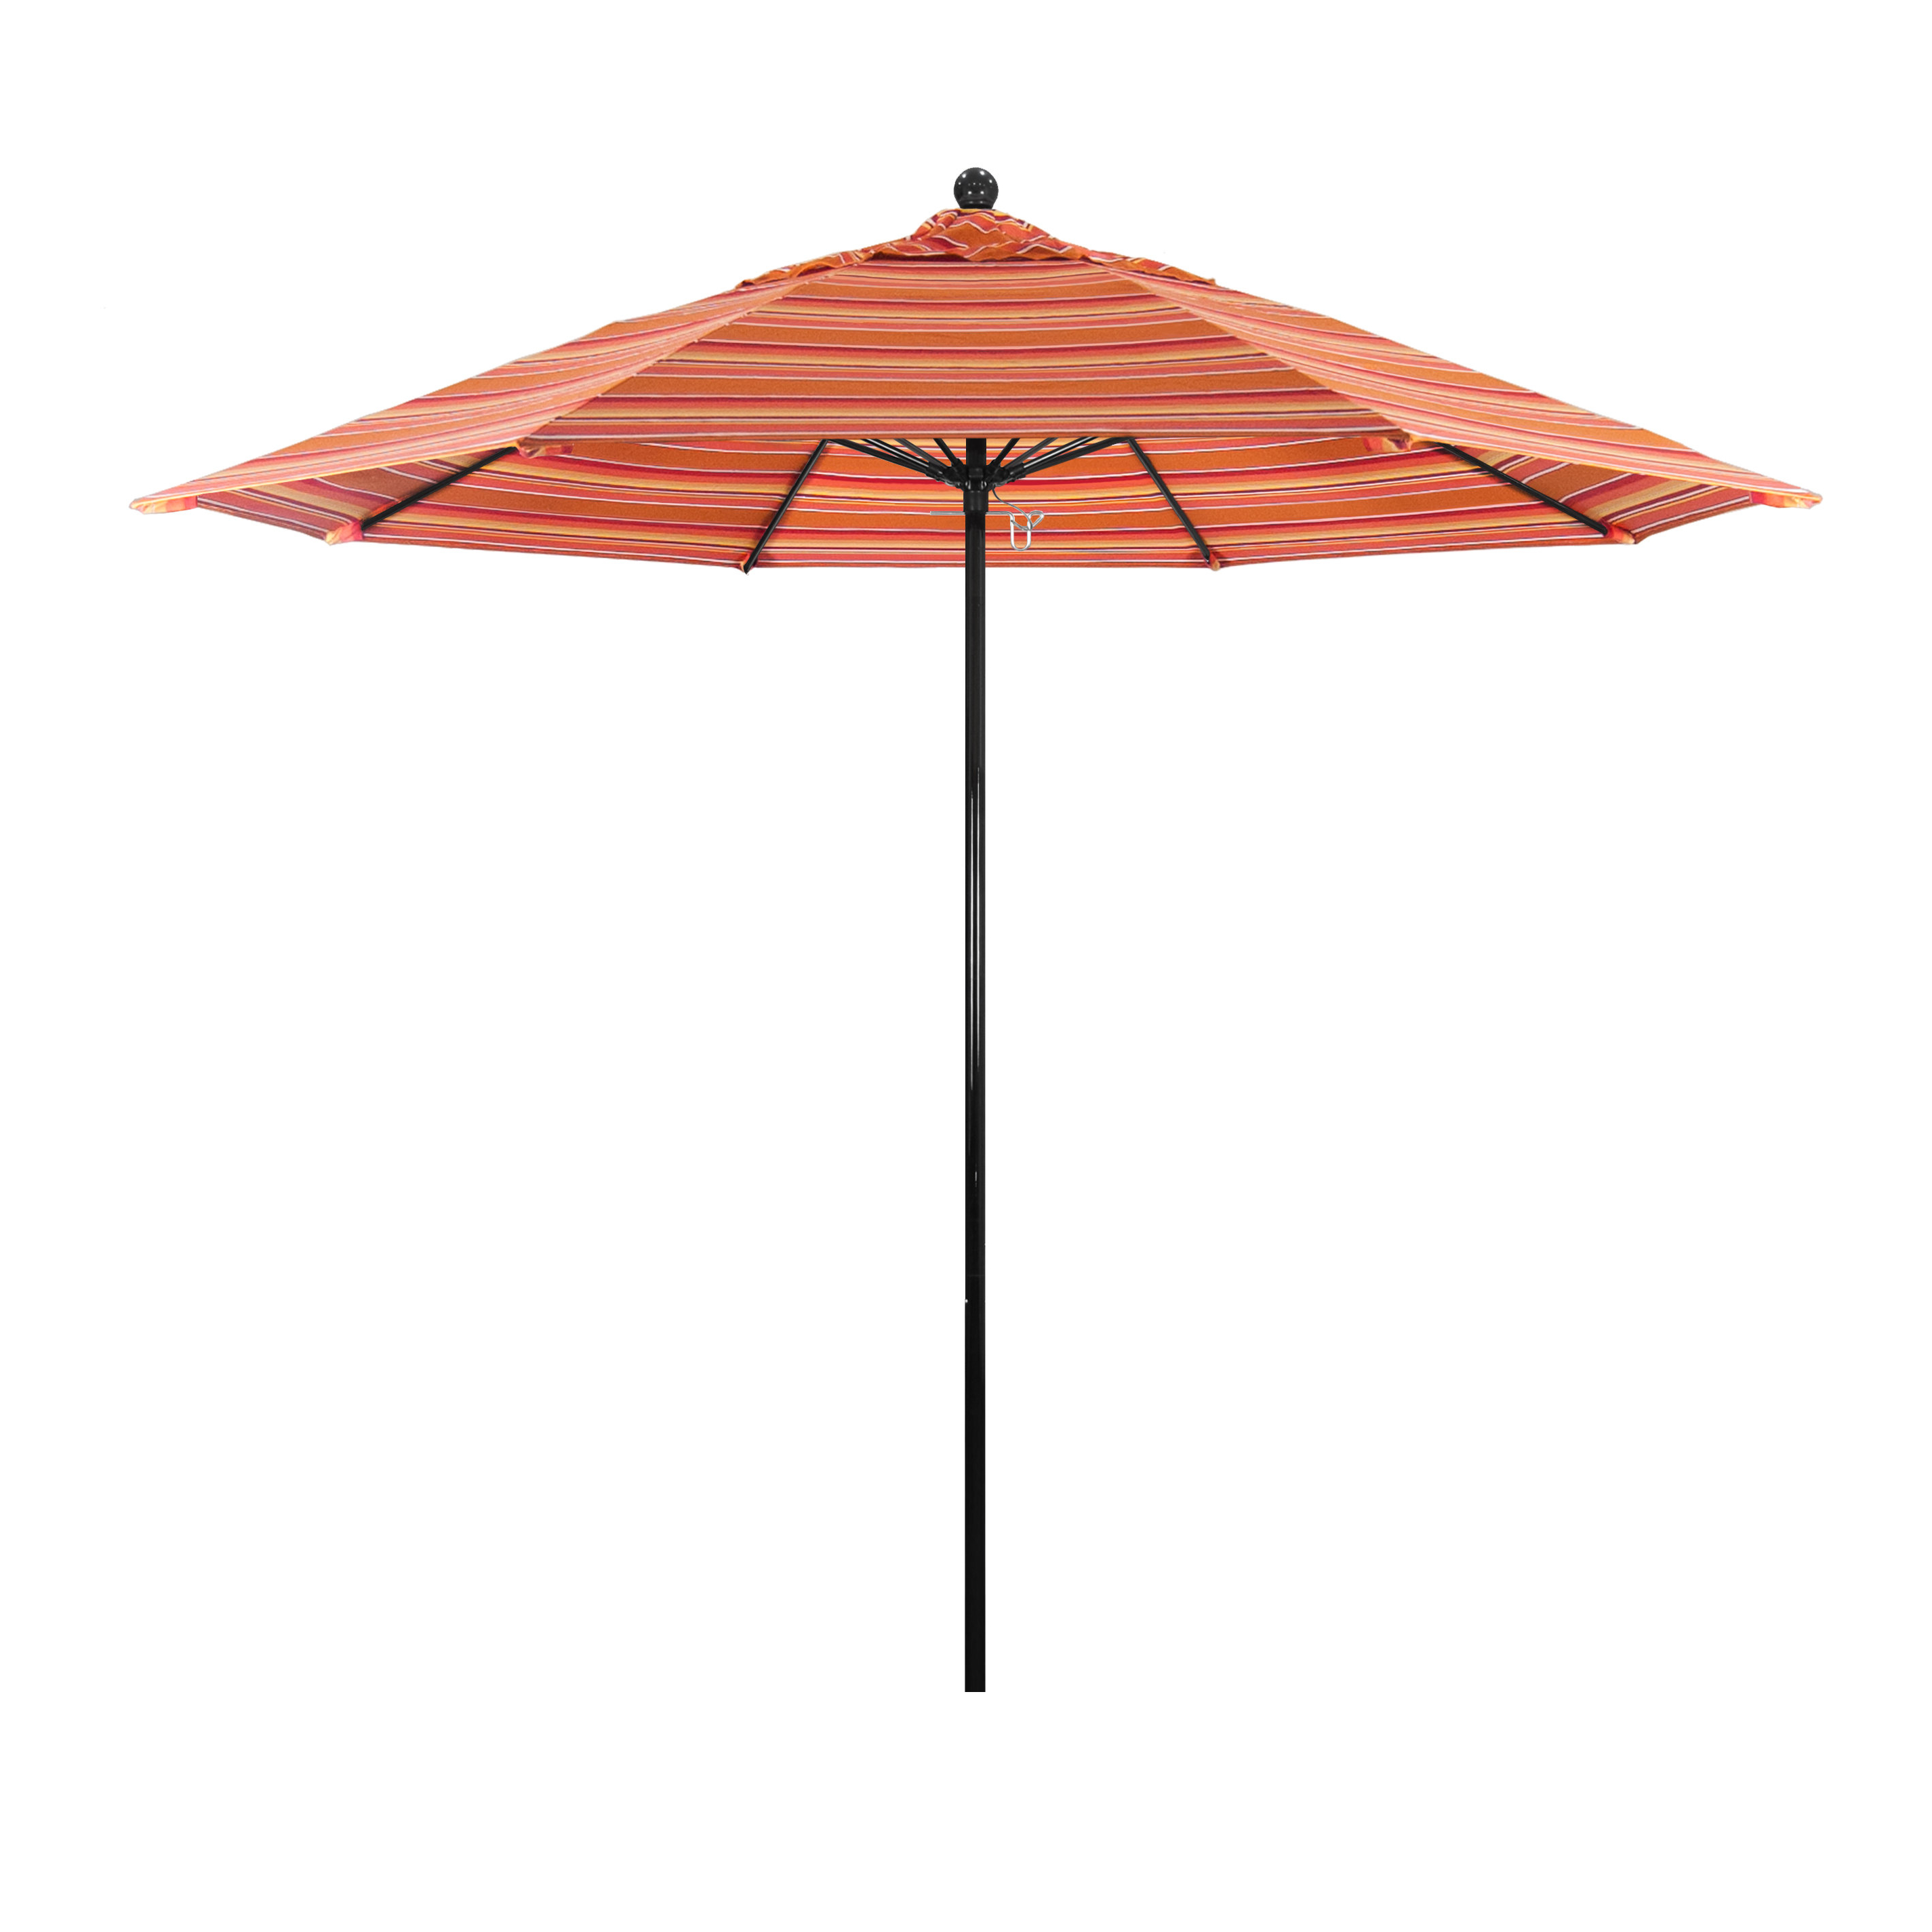 Popular Lizarraga Market Umbrellas In Oceanside Series 9' Market Sunbrella Umbrella (View 16 of 20)